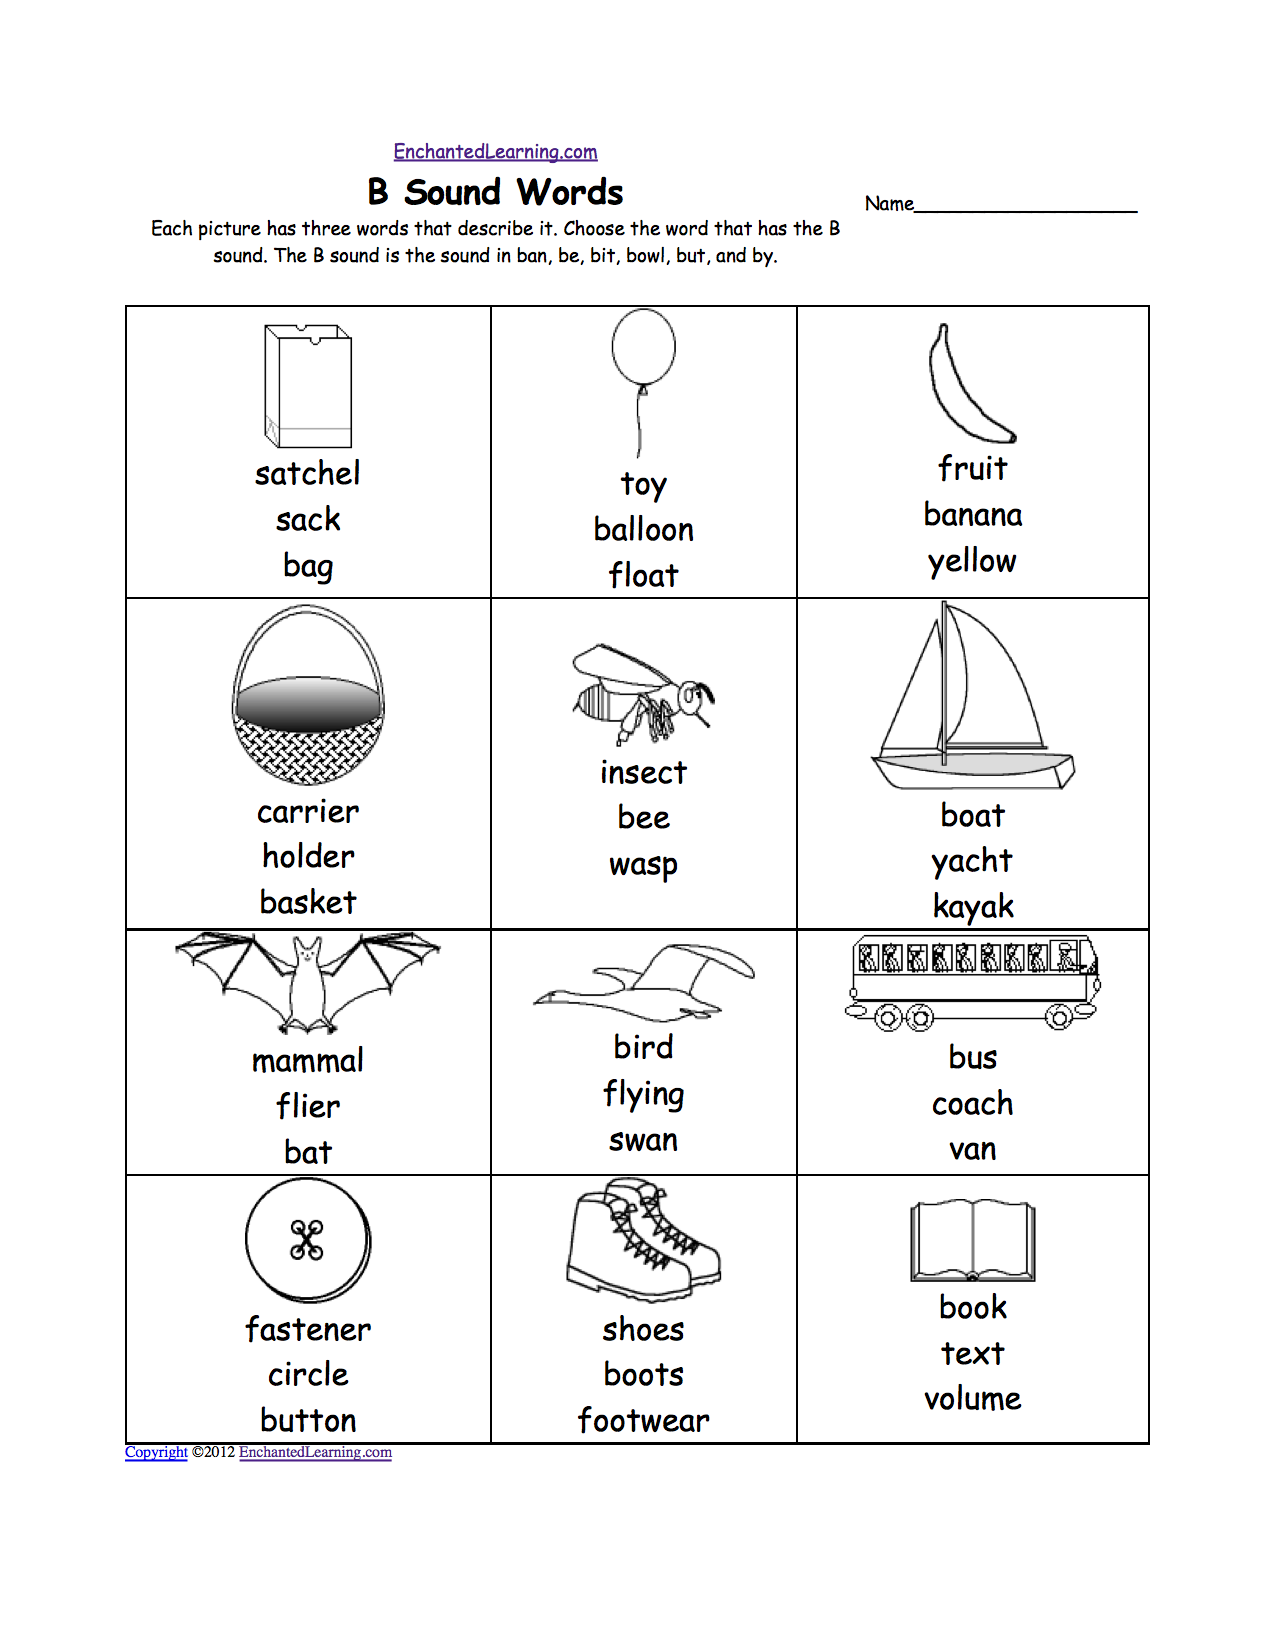 Weirdmailus  Sweet Phonics Worksheets Multiple Choice Worksheets To Print  With Magnificent Quotbquot Sound Phonics Worksheet Multiple Choice Each Picture Has Three Words That Describe It Choose The Word That Has A Quotbquot Sound The Quotbquot Sound Is The Sound  With Archaic Linear Graphs Worksheets Also Worksheet On Interjections In Addition Free Printable Missing Number Worksheets And Webelos Fitness Worksheet As Well As Addition Equation Worksheets Additionally Free Dictionary Worksheets From Enchantedlearningcom With Weirdmailus  Magnificent Phonics Worksheets Multiple Choice Worksheets To Print  With Archaic Quotbquot Sound Phonics Worksheet Multiple Choice Each Picture Has Three Words That Describe It Choose The Word That Has A Quotbquot Sound The Quotbquot Sound Is The Sound  And Sweet Linear Graphs Worksheets Also Worksheet On Interjections In Addition Free Printable Missing Number Worksheets From Enchantedlearningcom